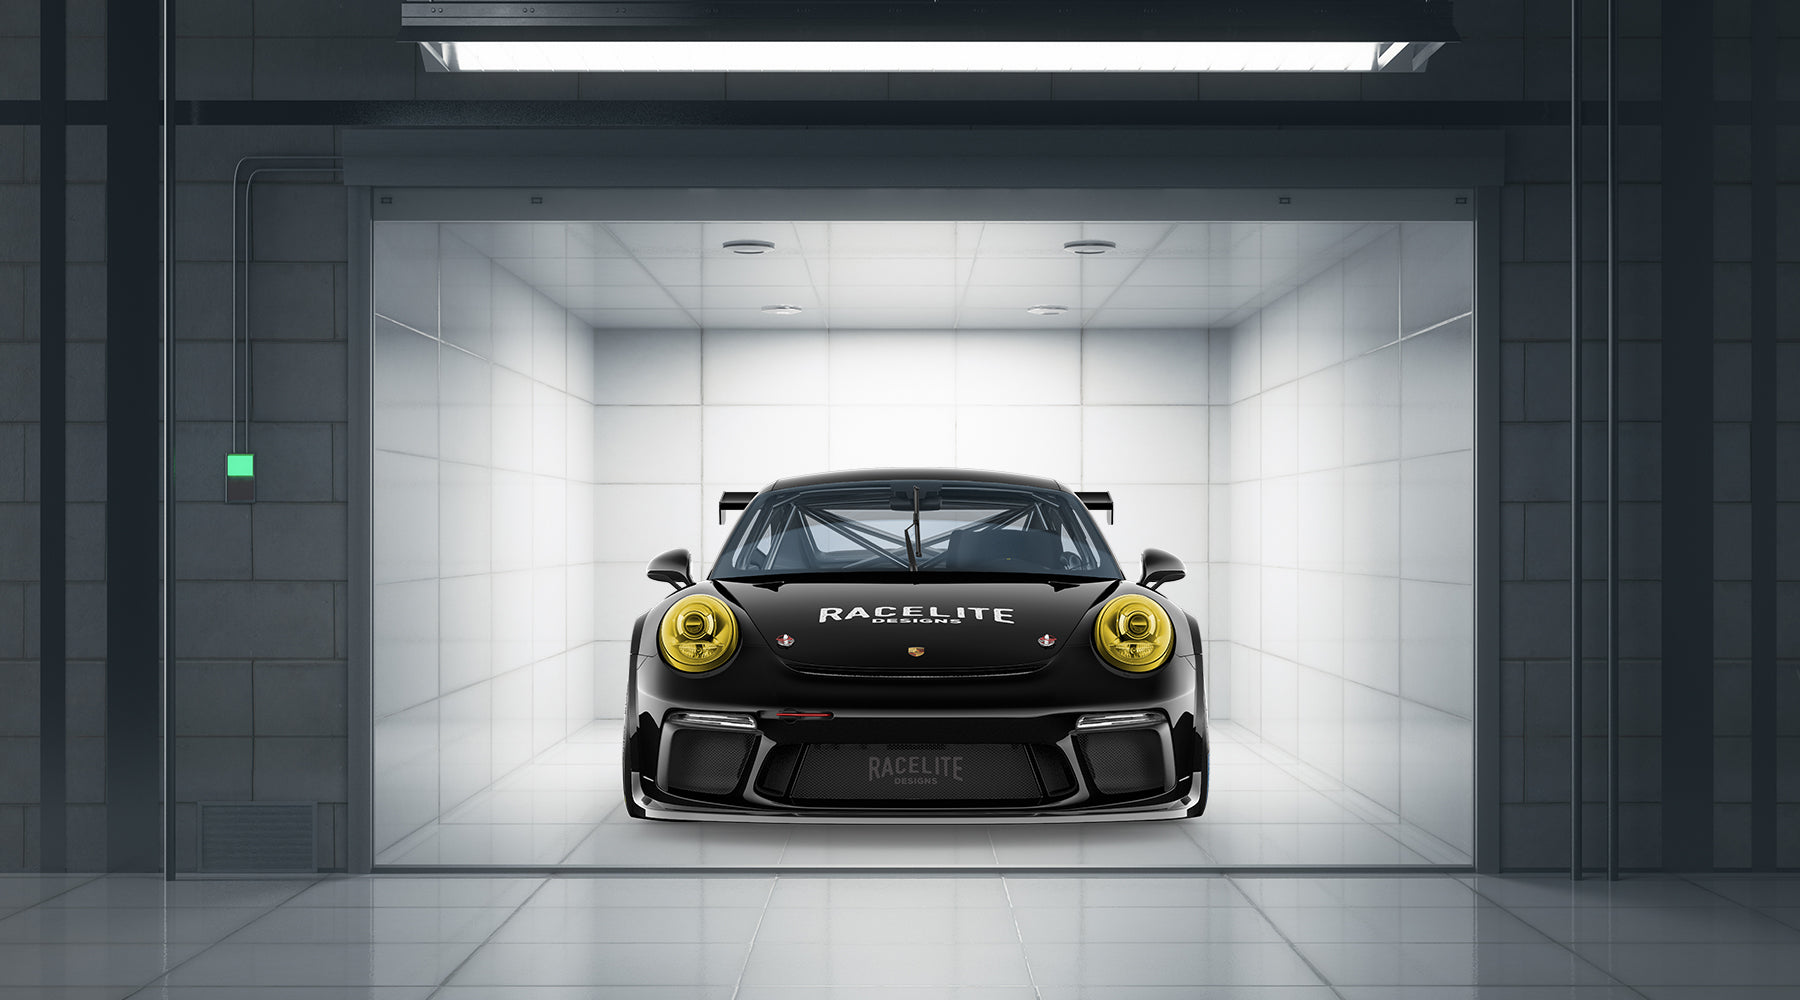 Racelite Designs specializes in fully customized accessories for your Porsche 911. Racelite Designs custom graphics and accessories for Porsche 911 Carrera, GT3, GT3RS, GT2RS, Cayman, Boxster, GT3 Cup and more!